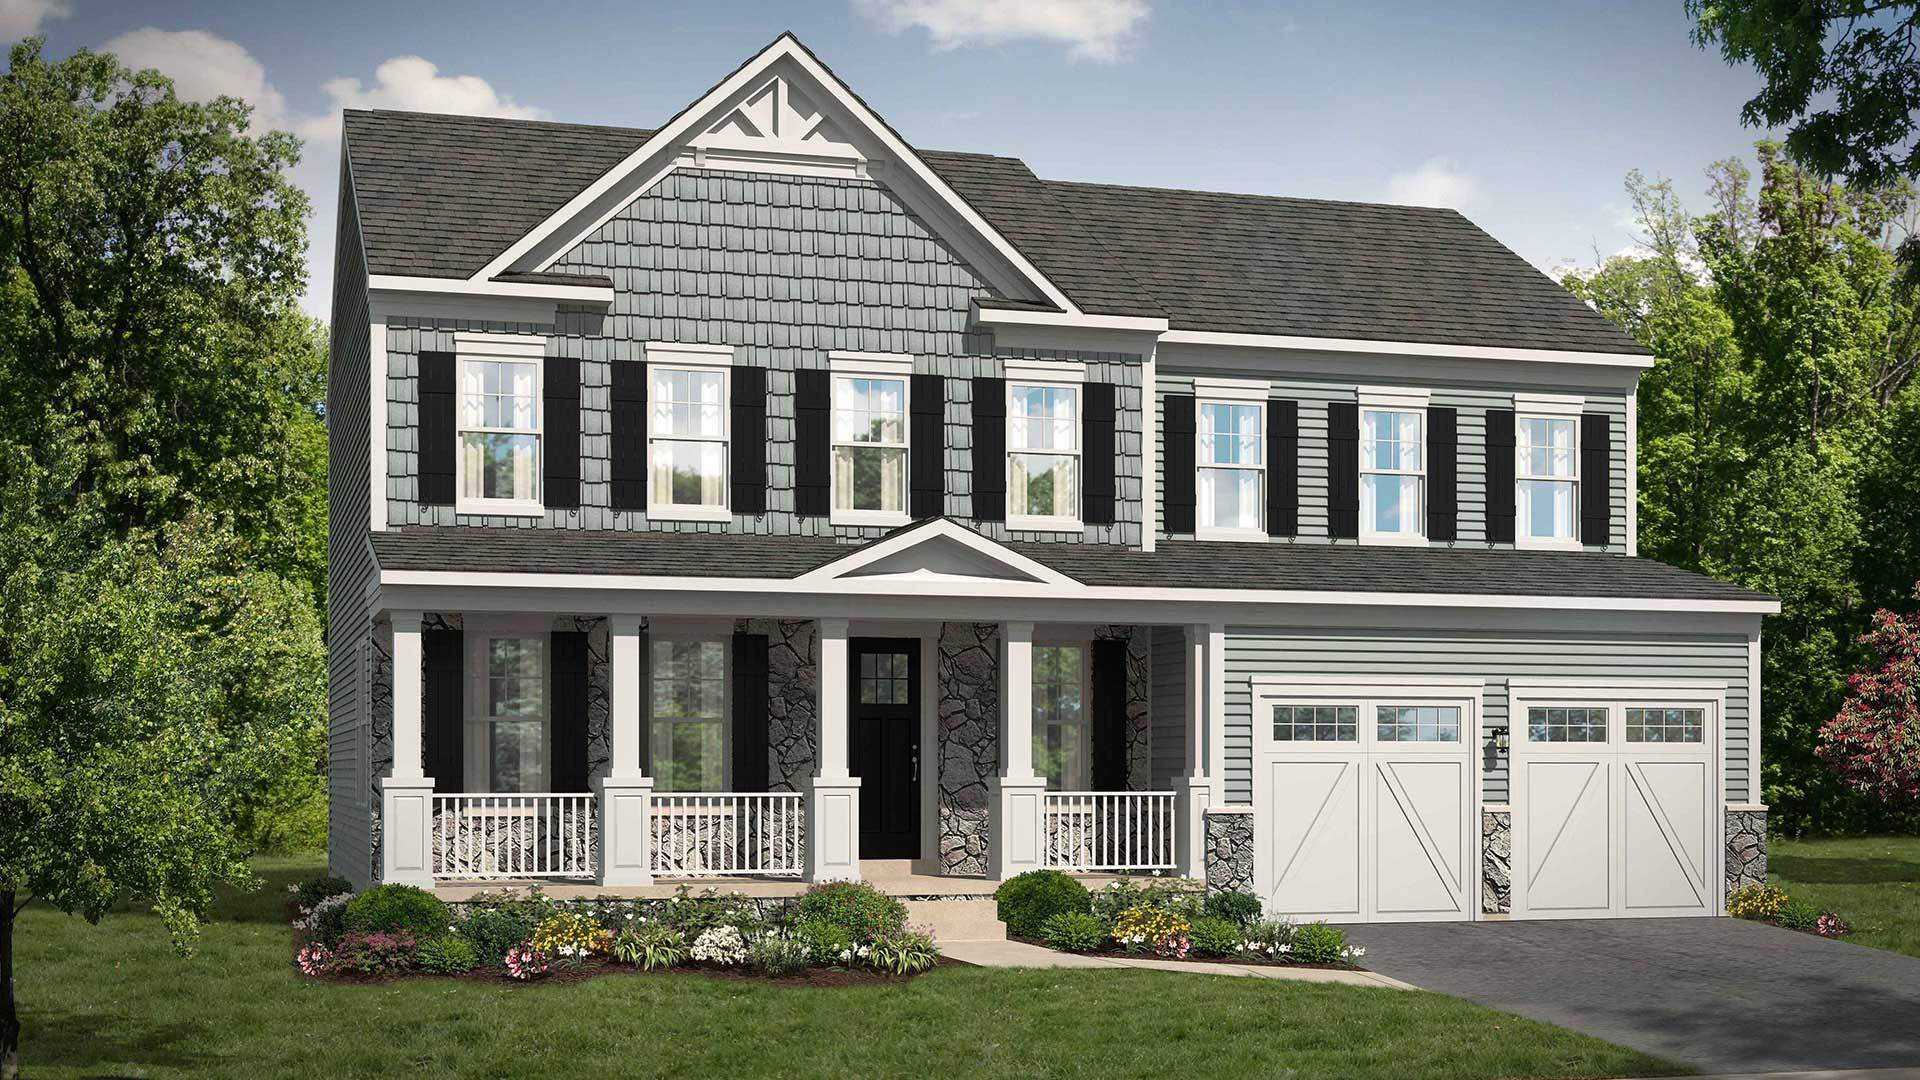 Single Family for Active at Bradley Square - Lindsey 8920 Englewood Farms Drive Manassas, Virginia 20112 United States